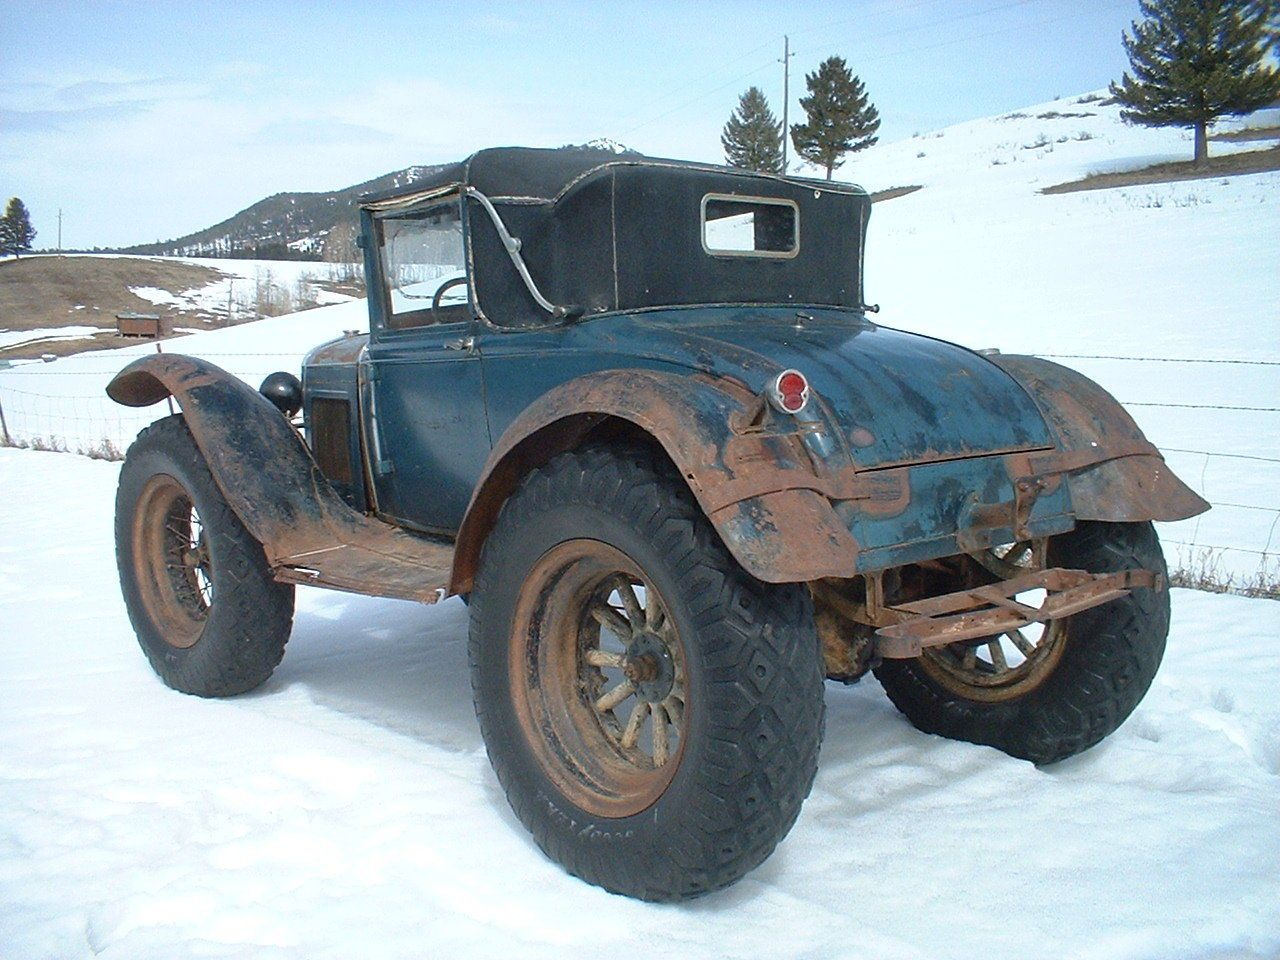 The Oral History Of An Amazing 1930 Ford Model A Off-Road Mail Truck ...